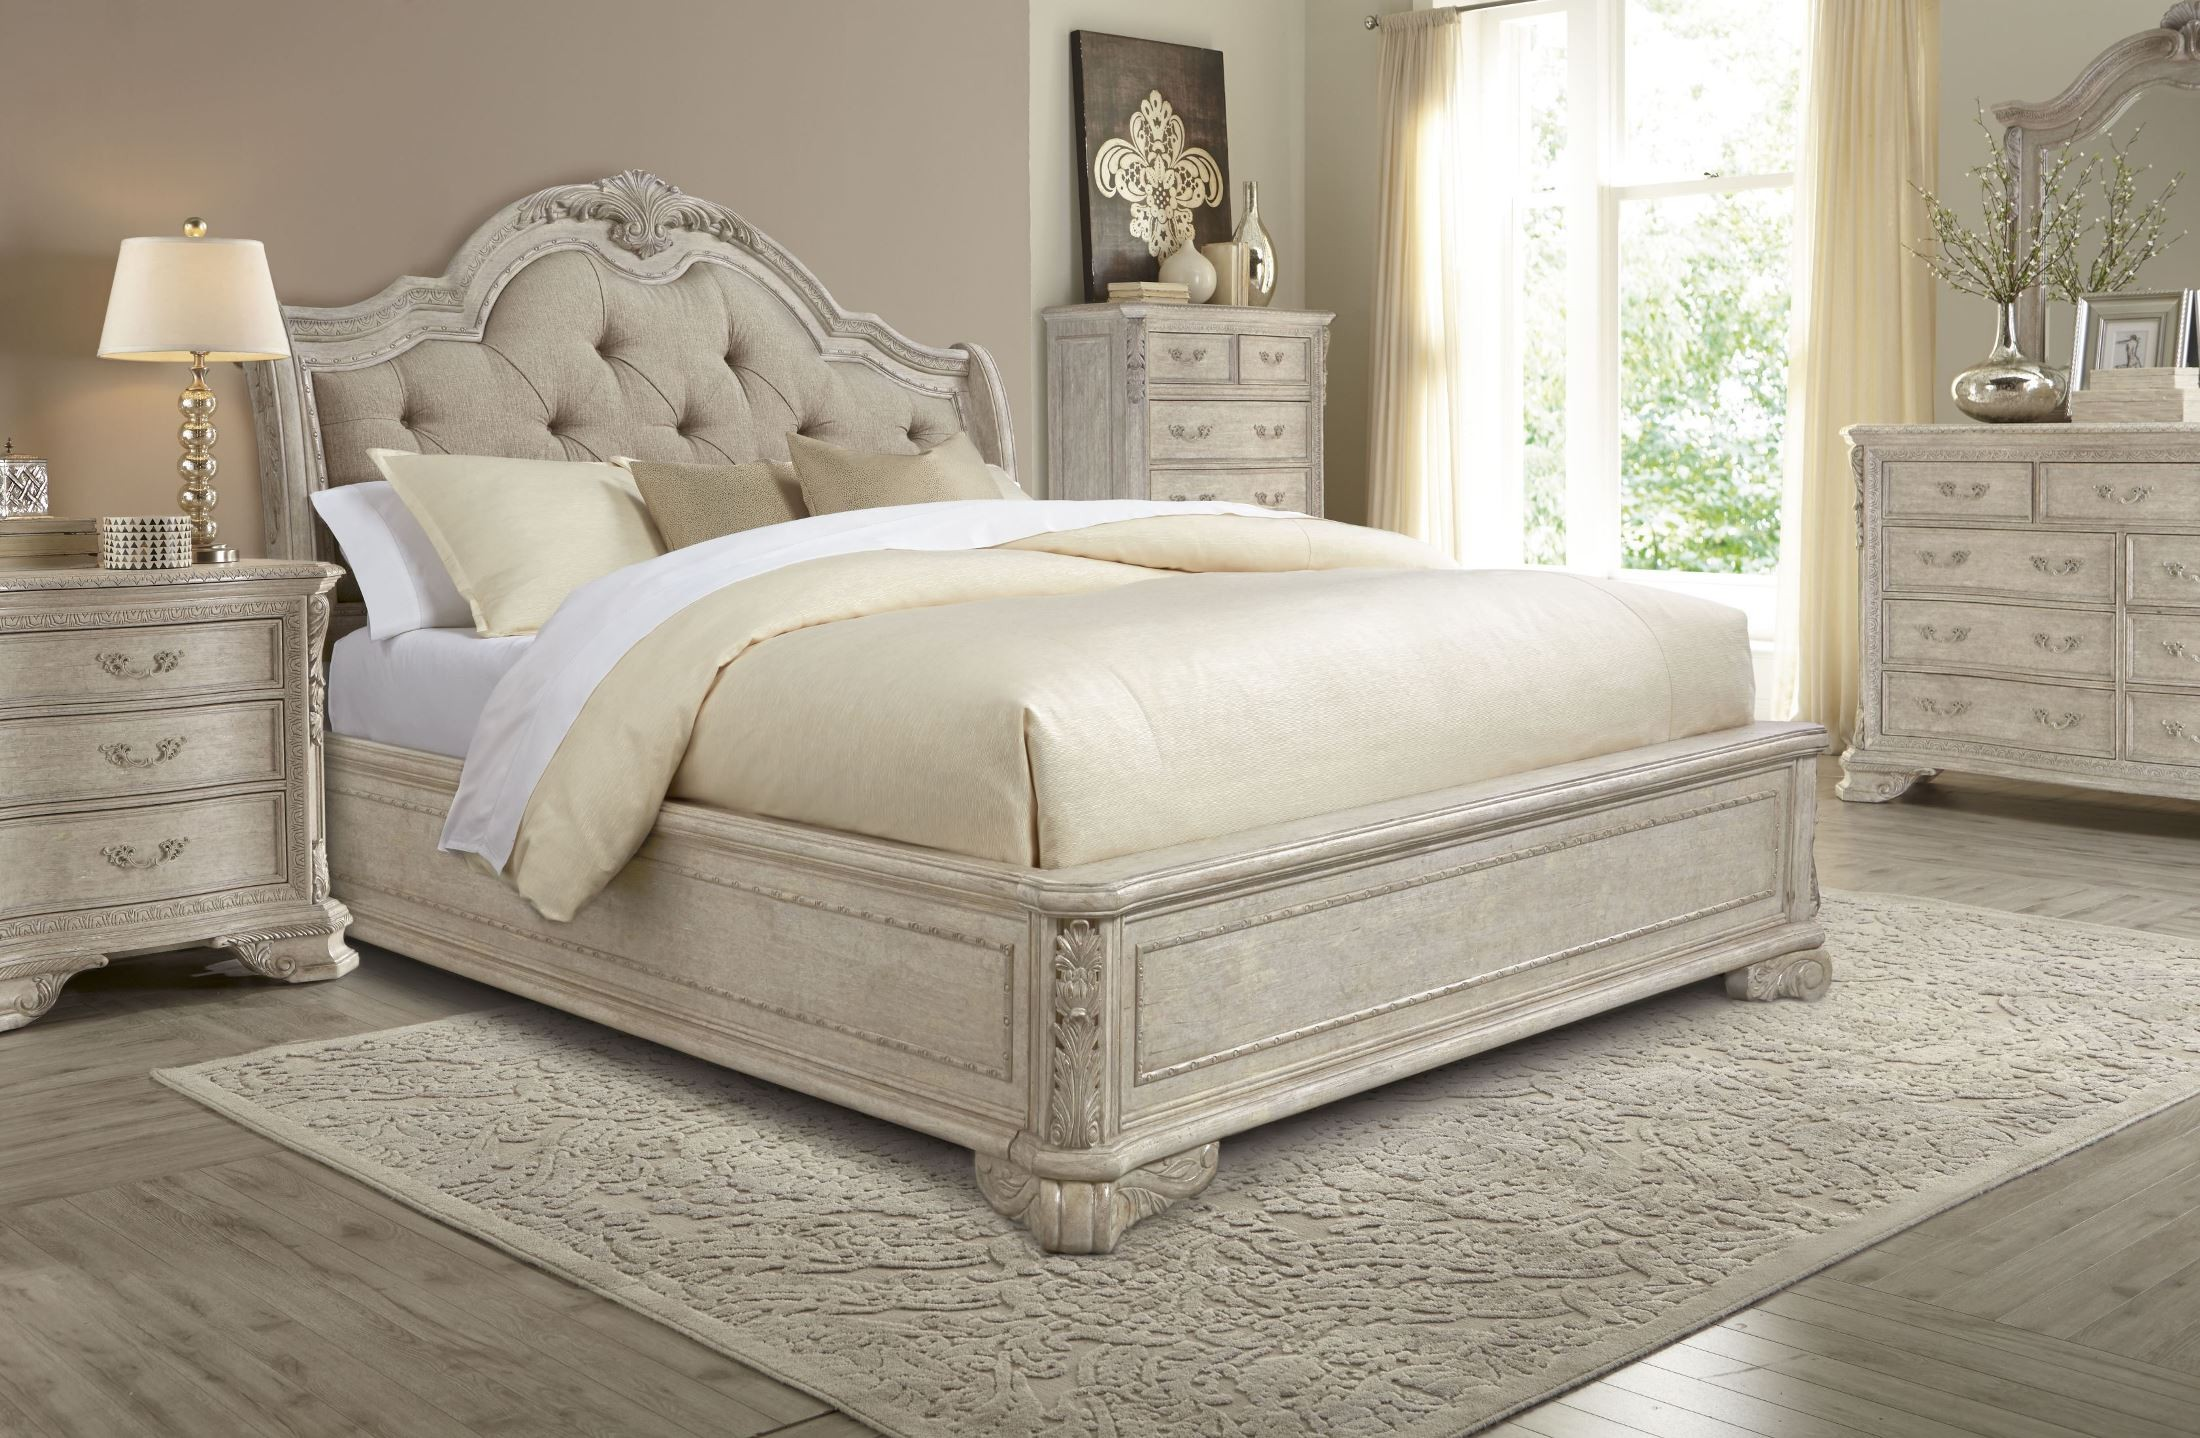 Renaissance Dove Grey Sleigh Upholstered Bedroom Set From Art 243125 2617 Coleman Furniture